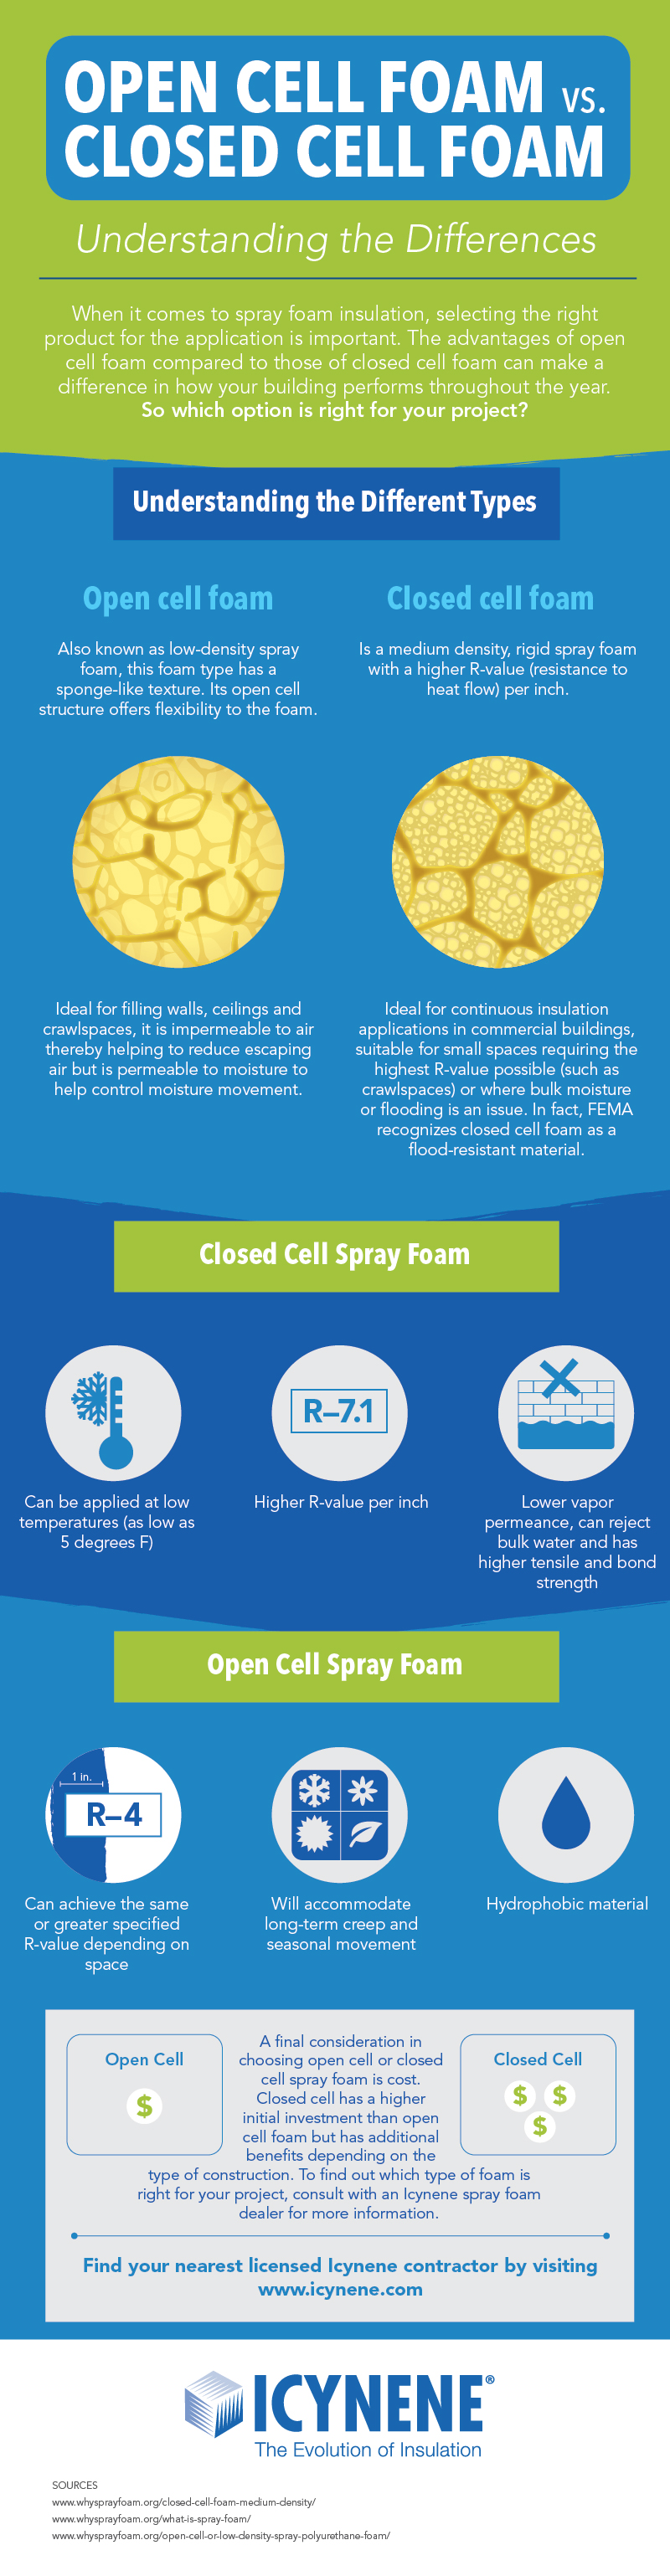 Open cell vs. closed cell spray foam - understand the differences